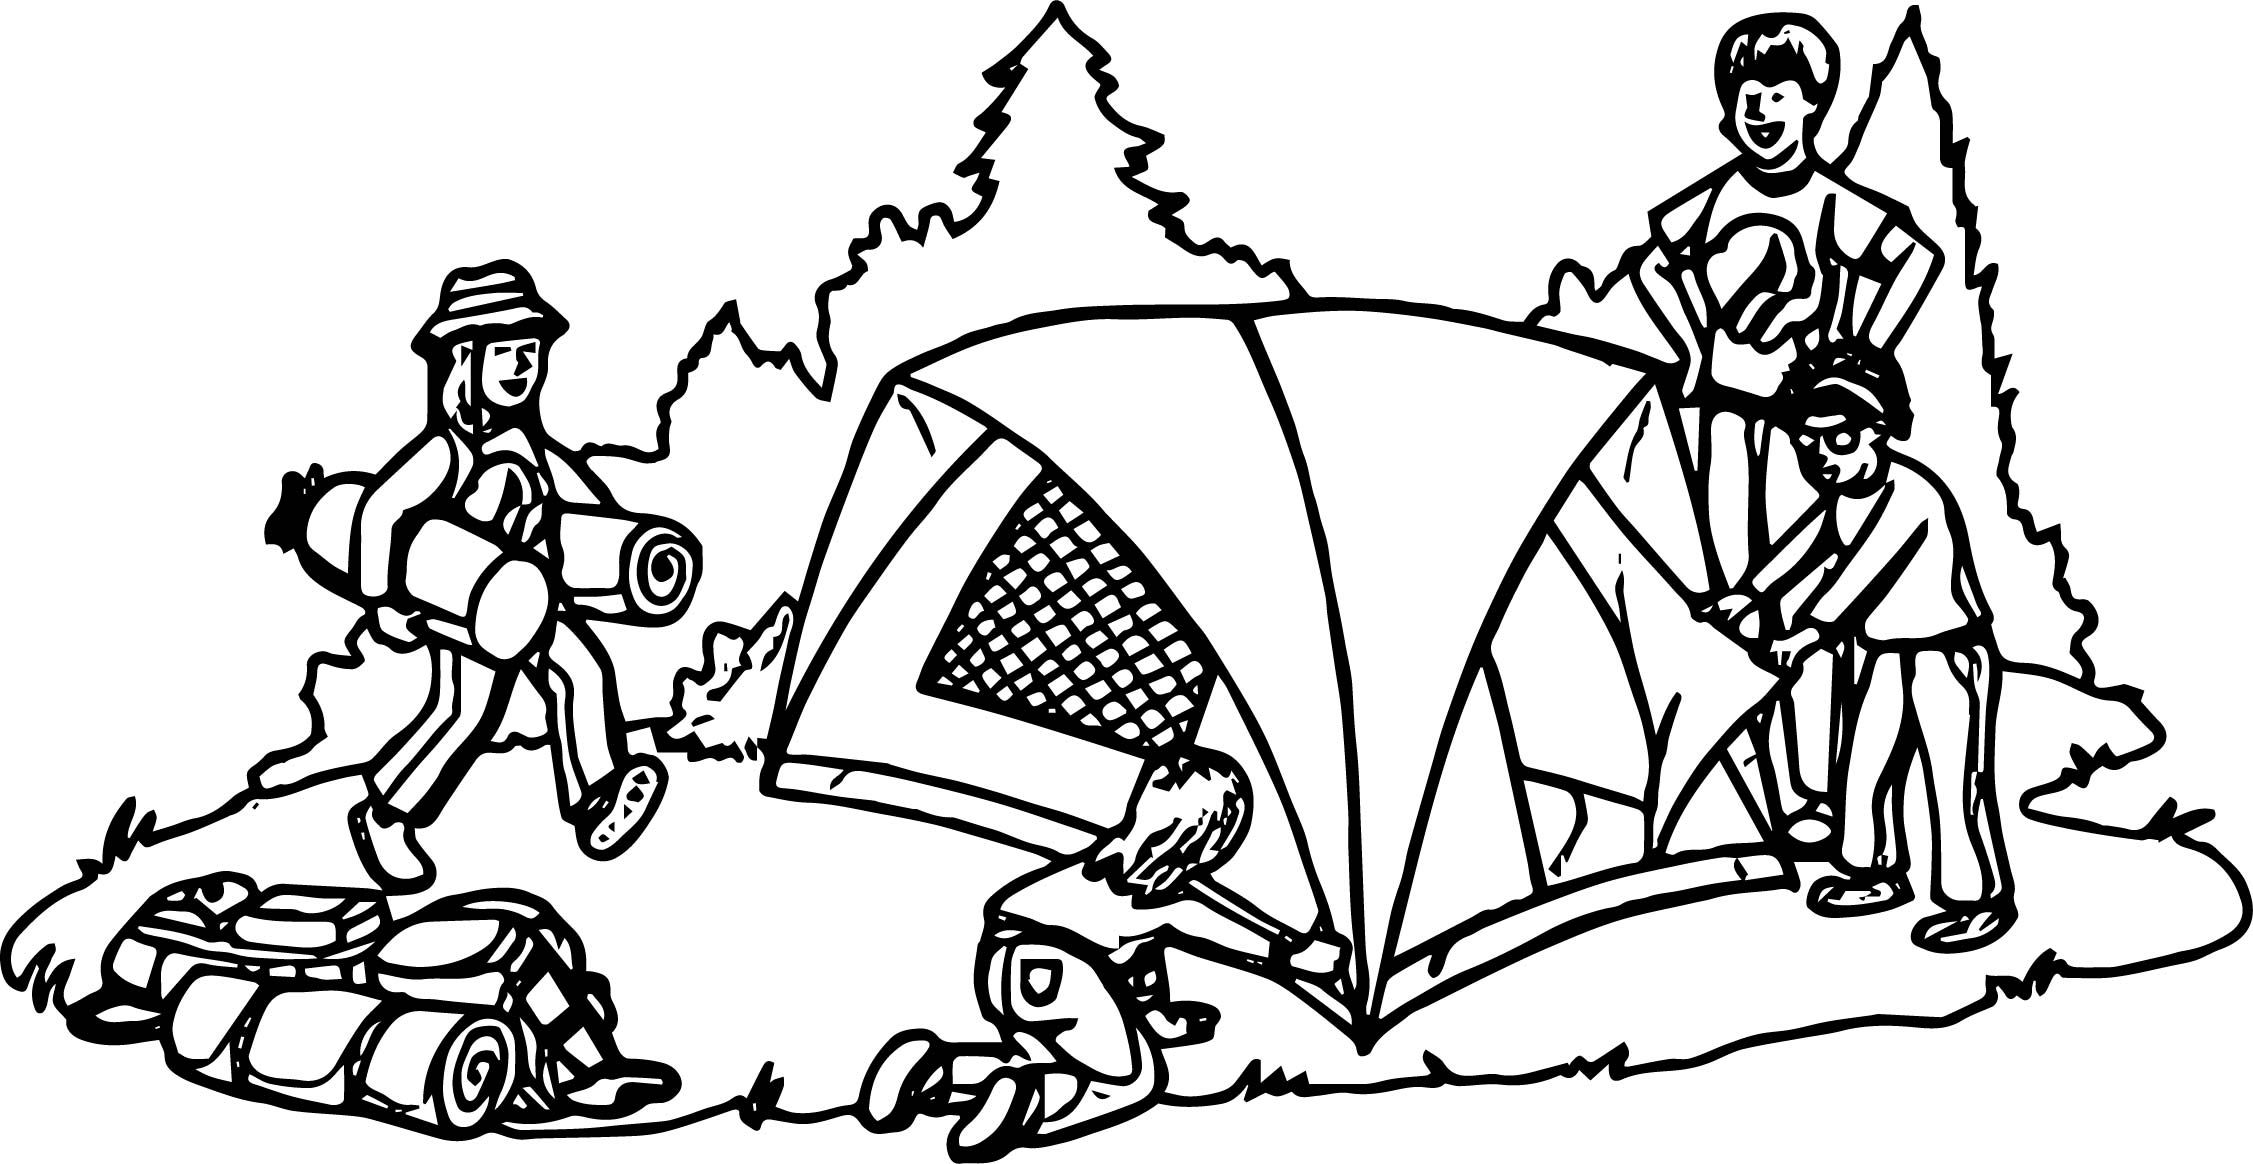 Nice Tent Camping Coloring Page Camping Coloring Pages Coloring Pages Coloring Sheets For Kids